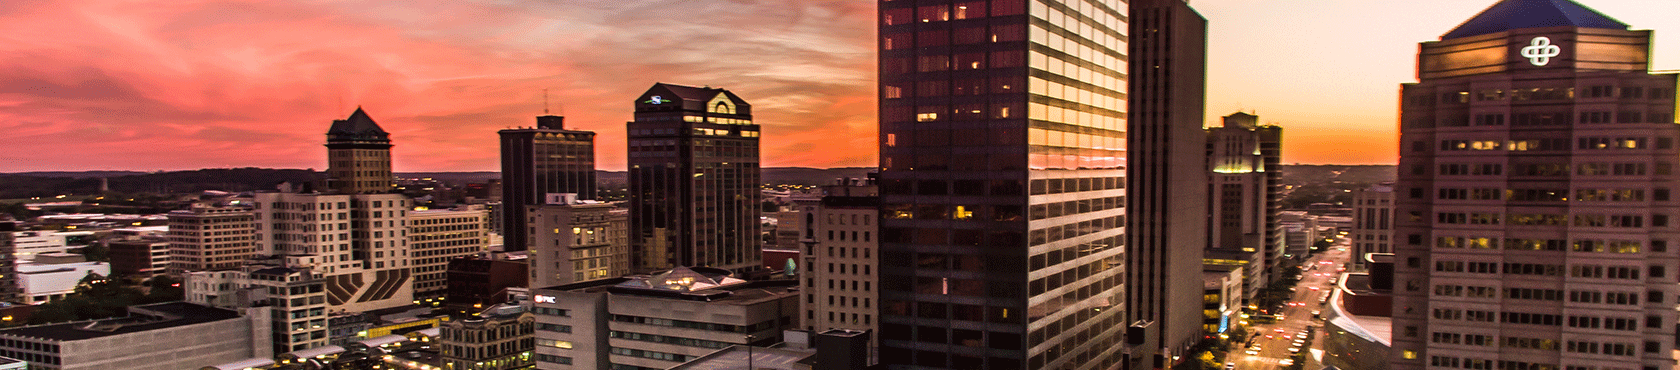 Dayton skyline at sunset